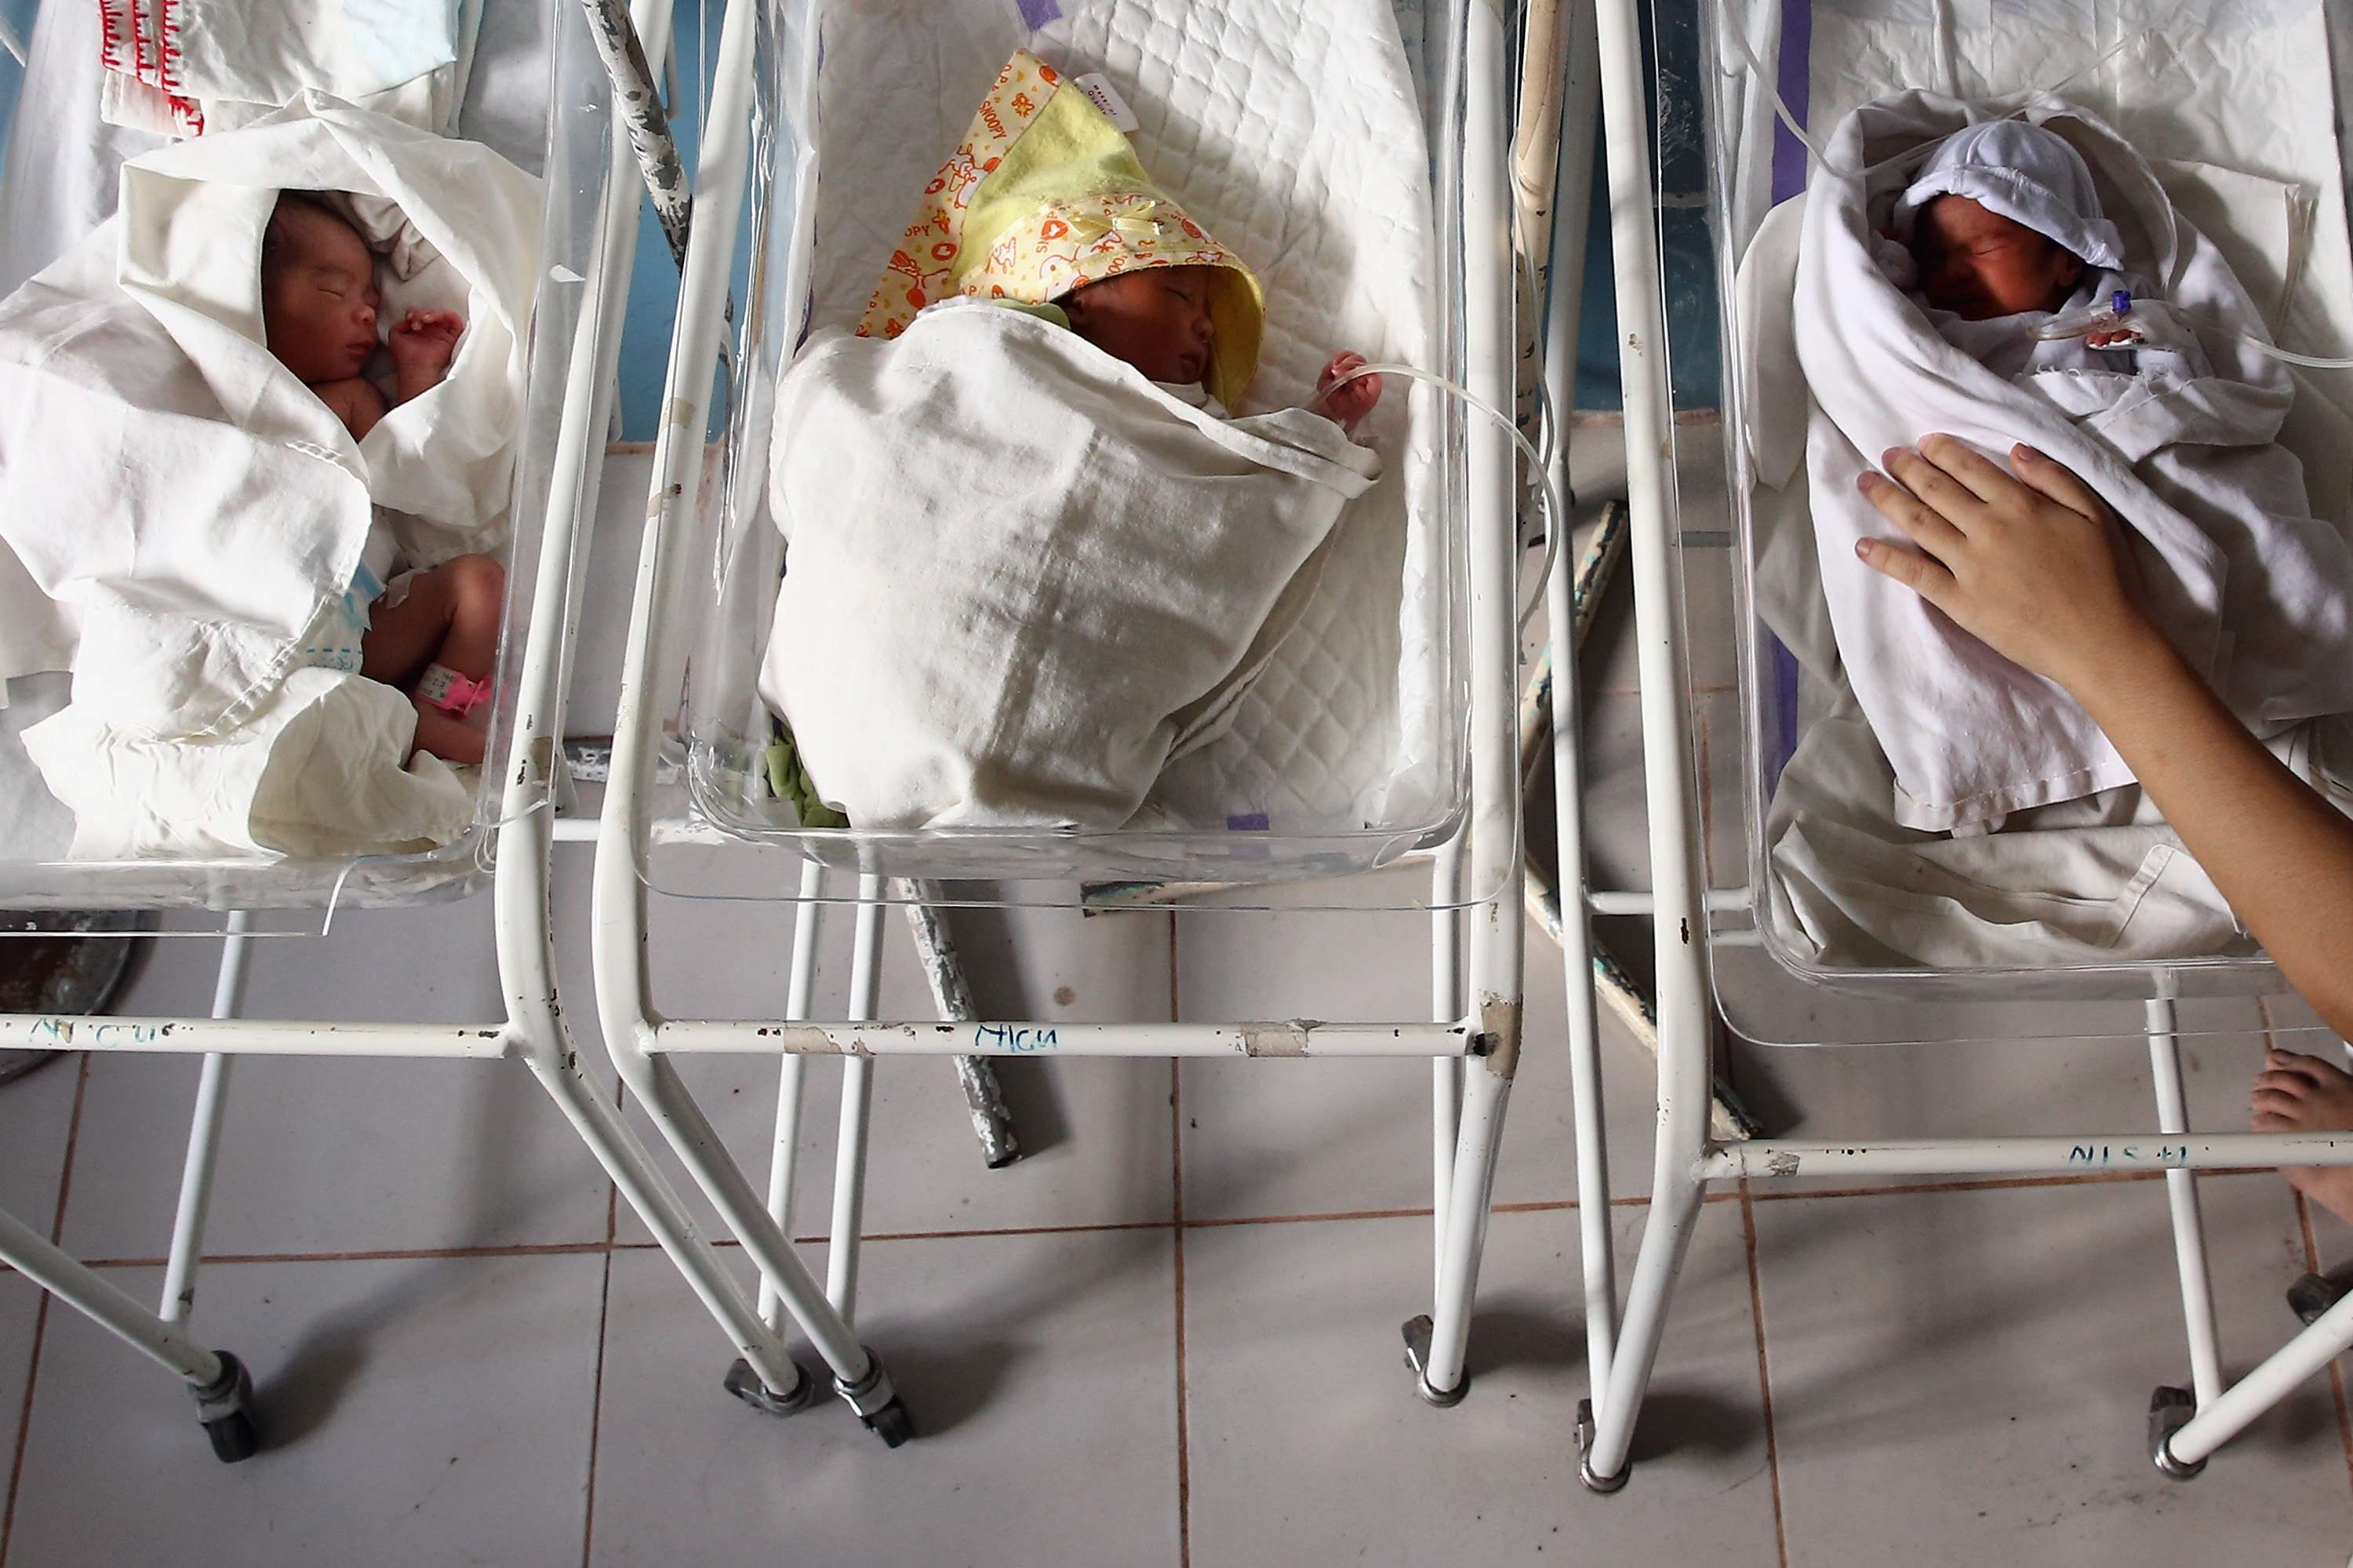 Bebés prematuros. Foto: Getty Images